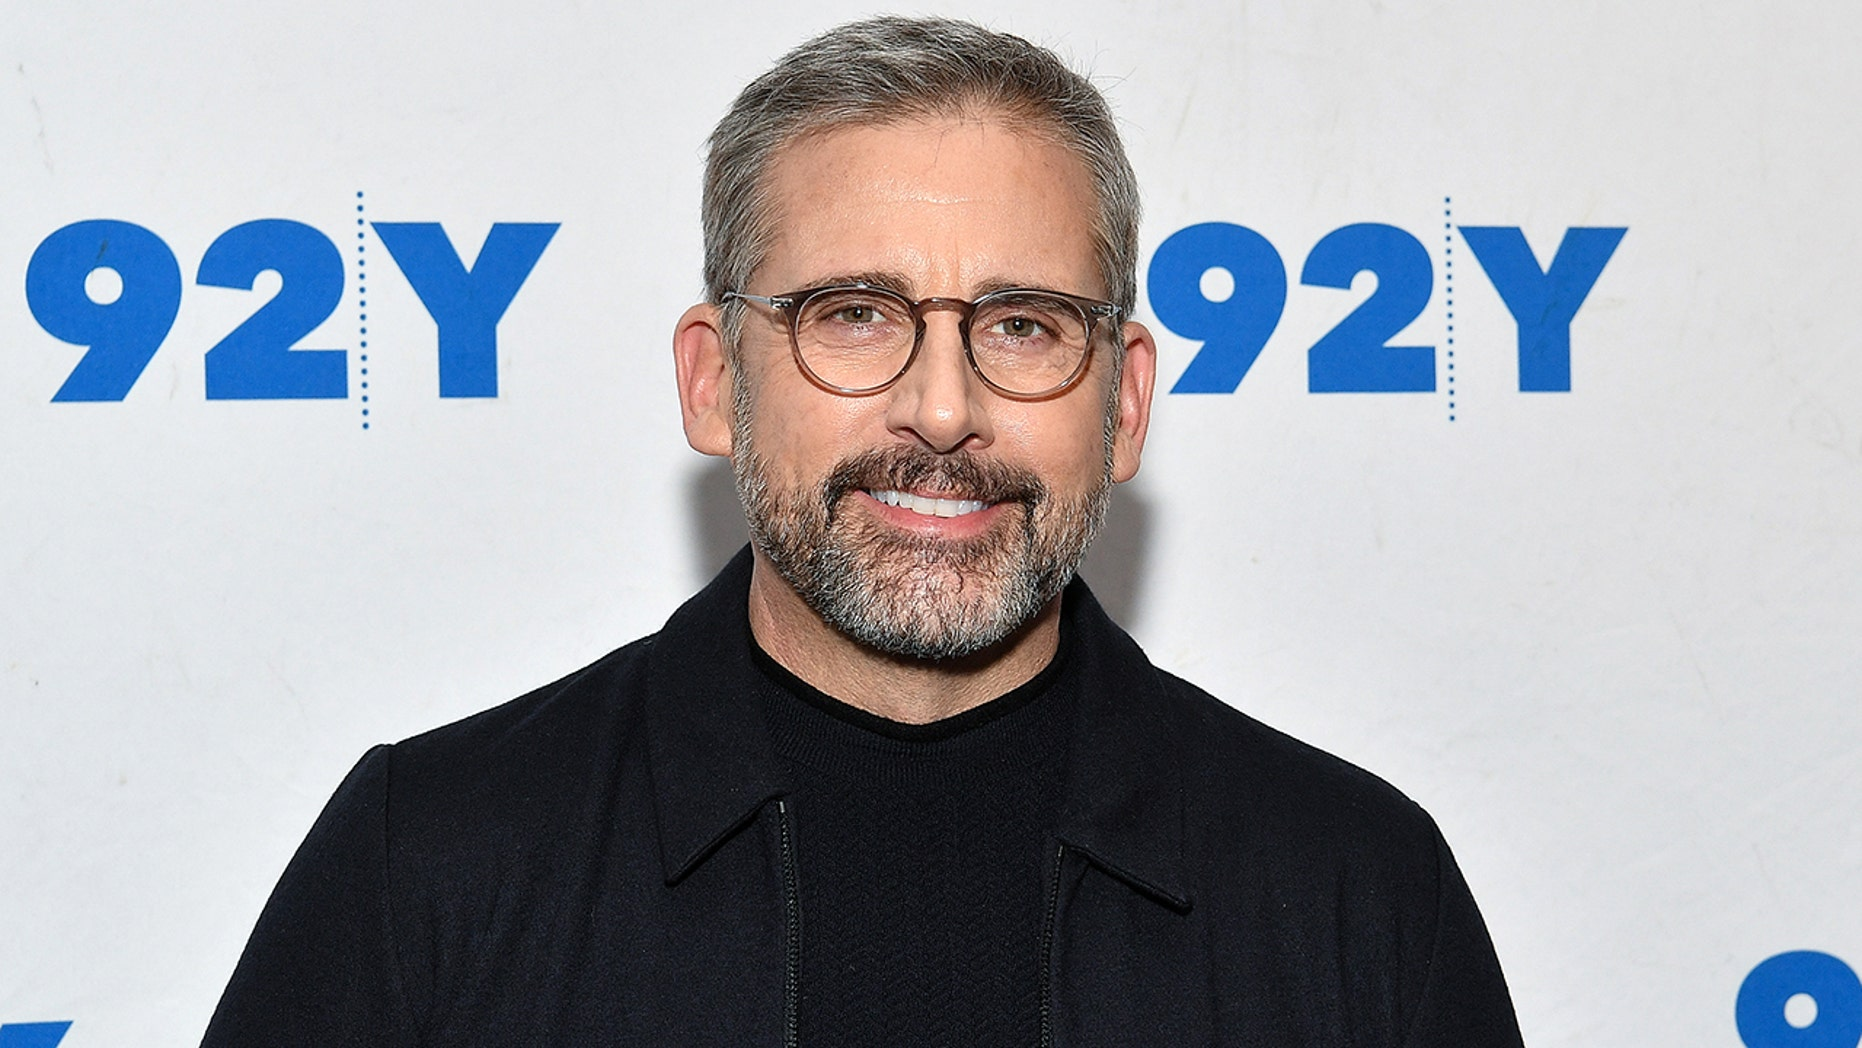 Steve Carell to launch Netflix comedy based on Trump's Space Force